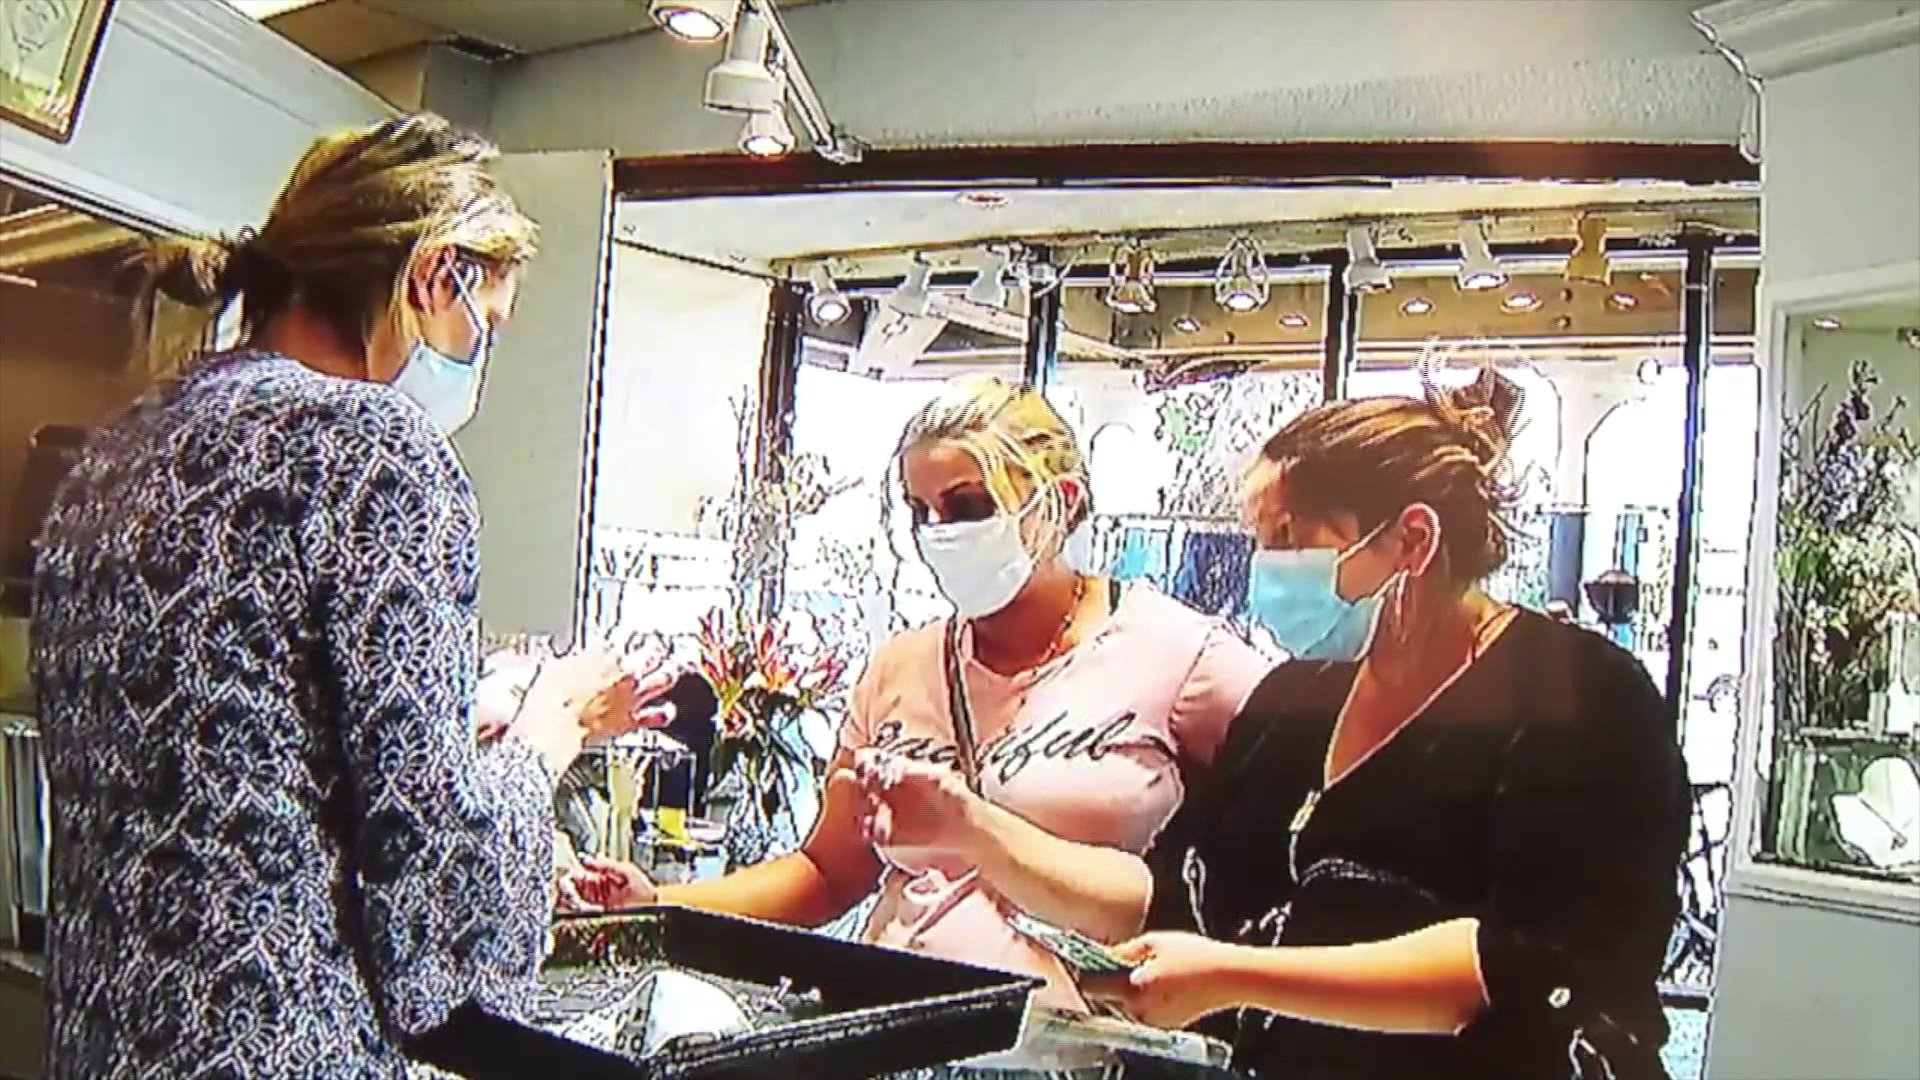 Two women were seen in security footage at Designs by Steven jewelry store in Villa Park.